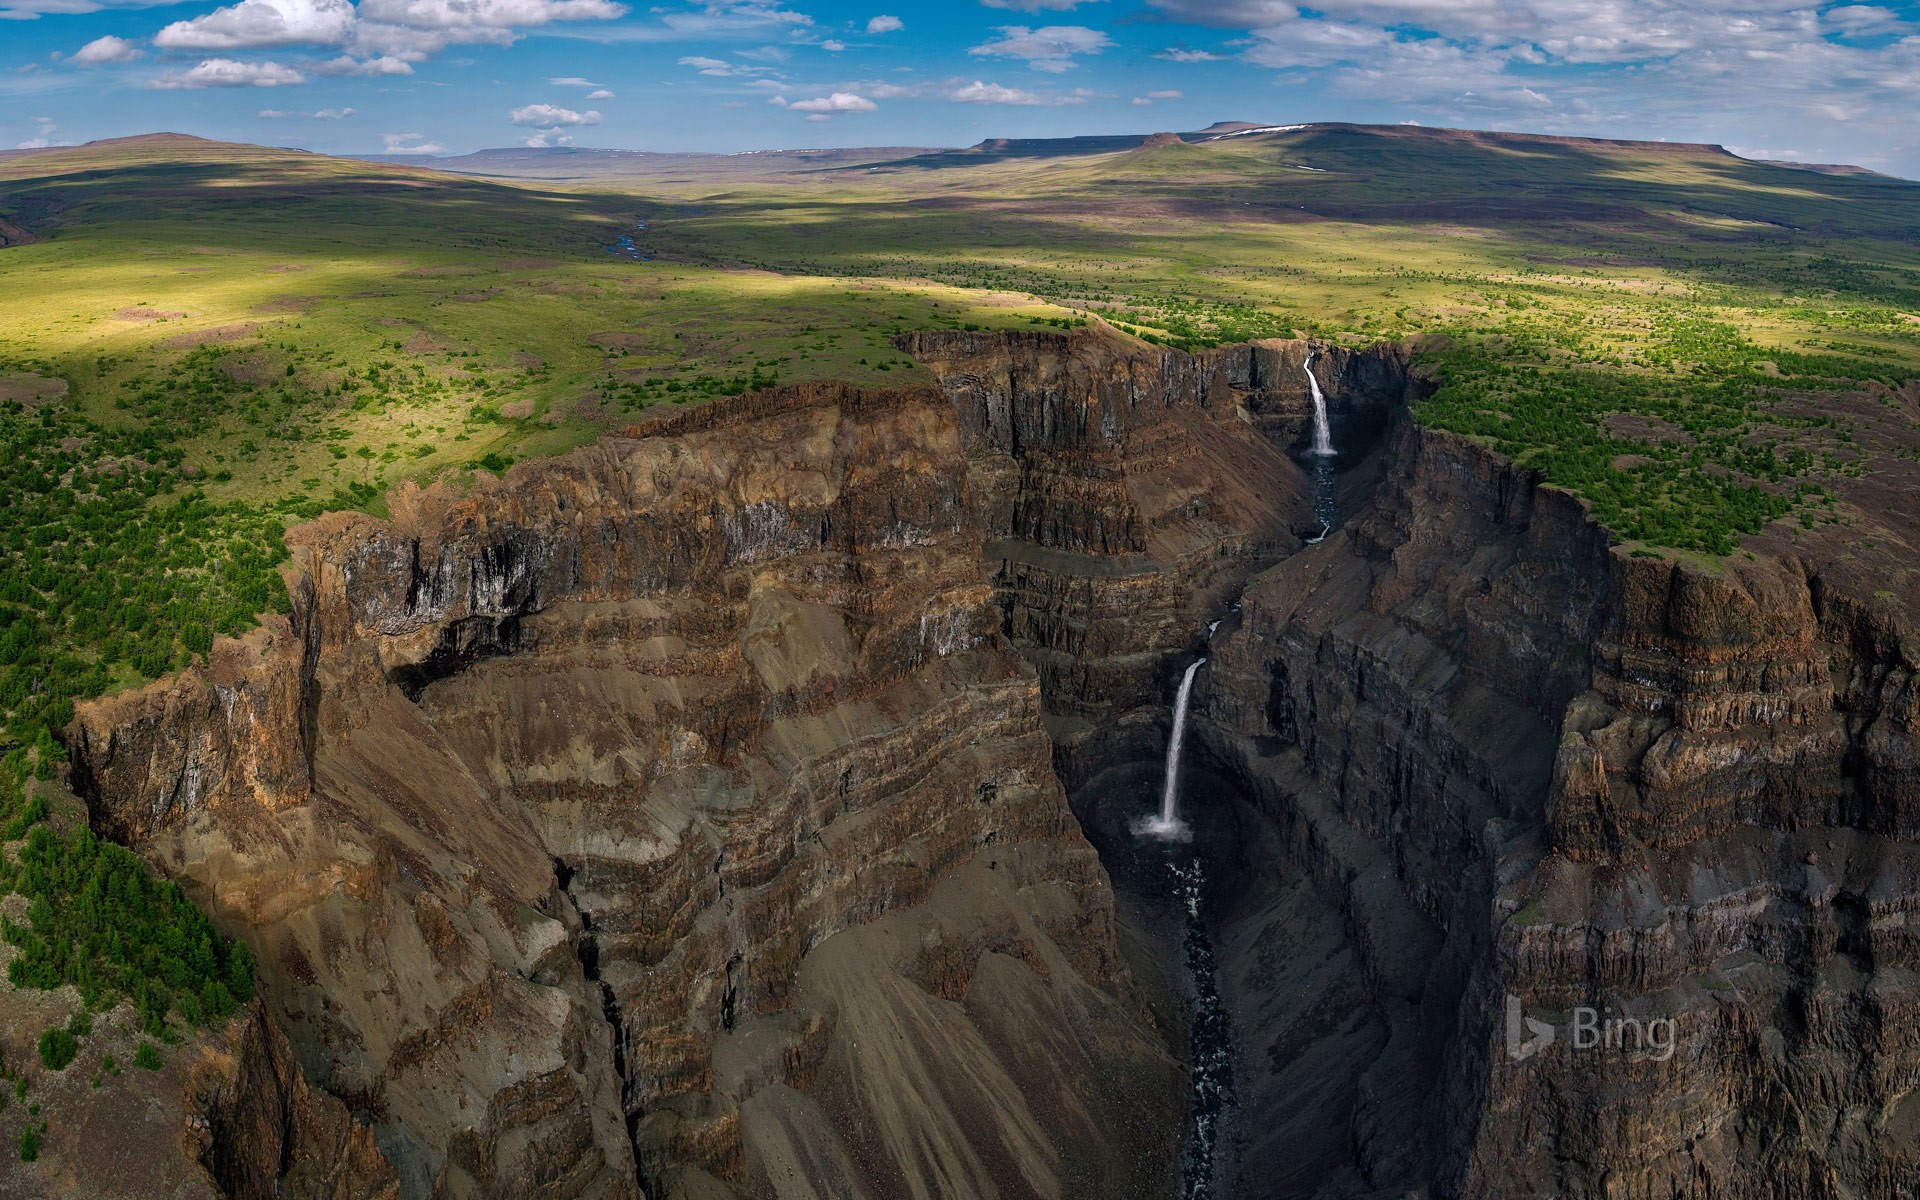 Waterfalls in a canyon of Siberia's Putorana Plateau, Russia